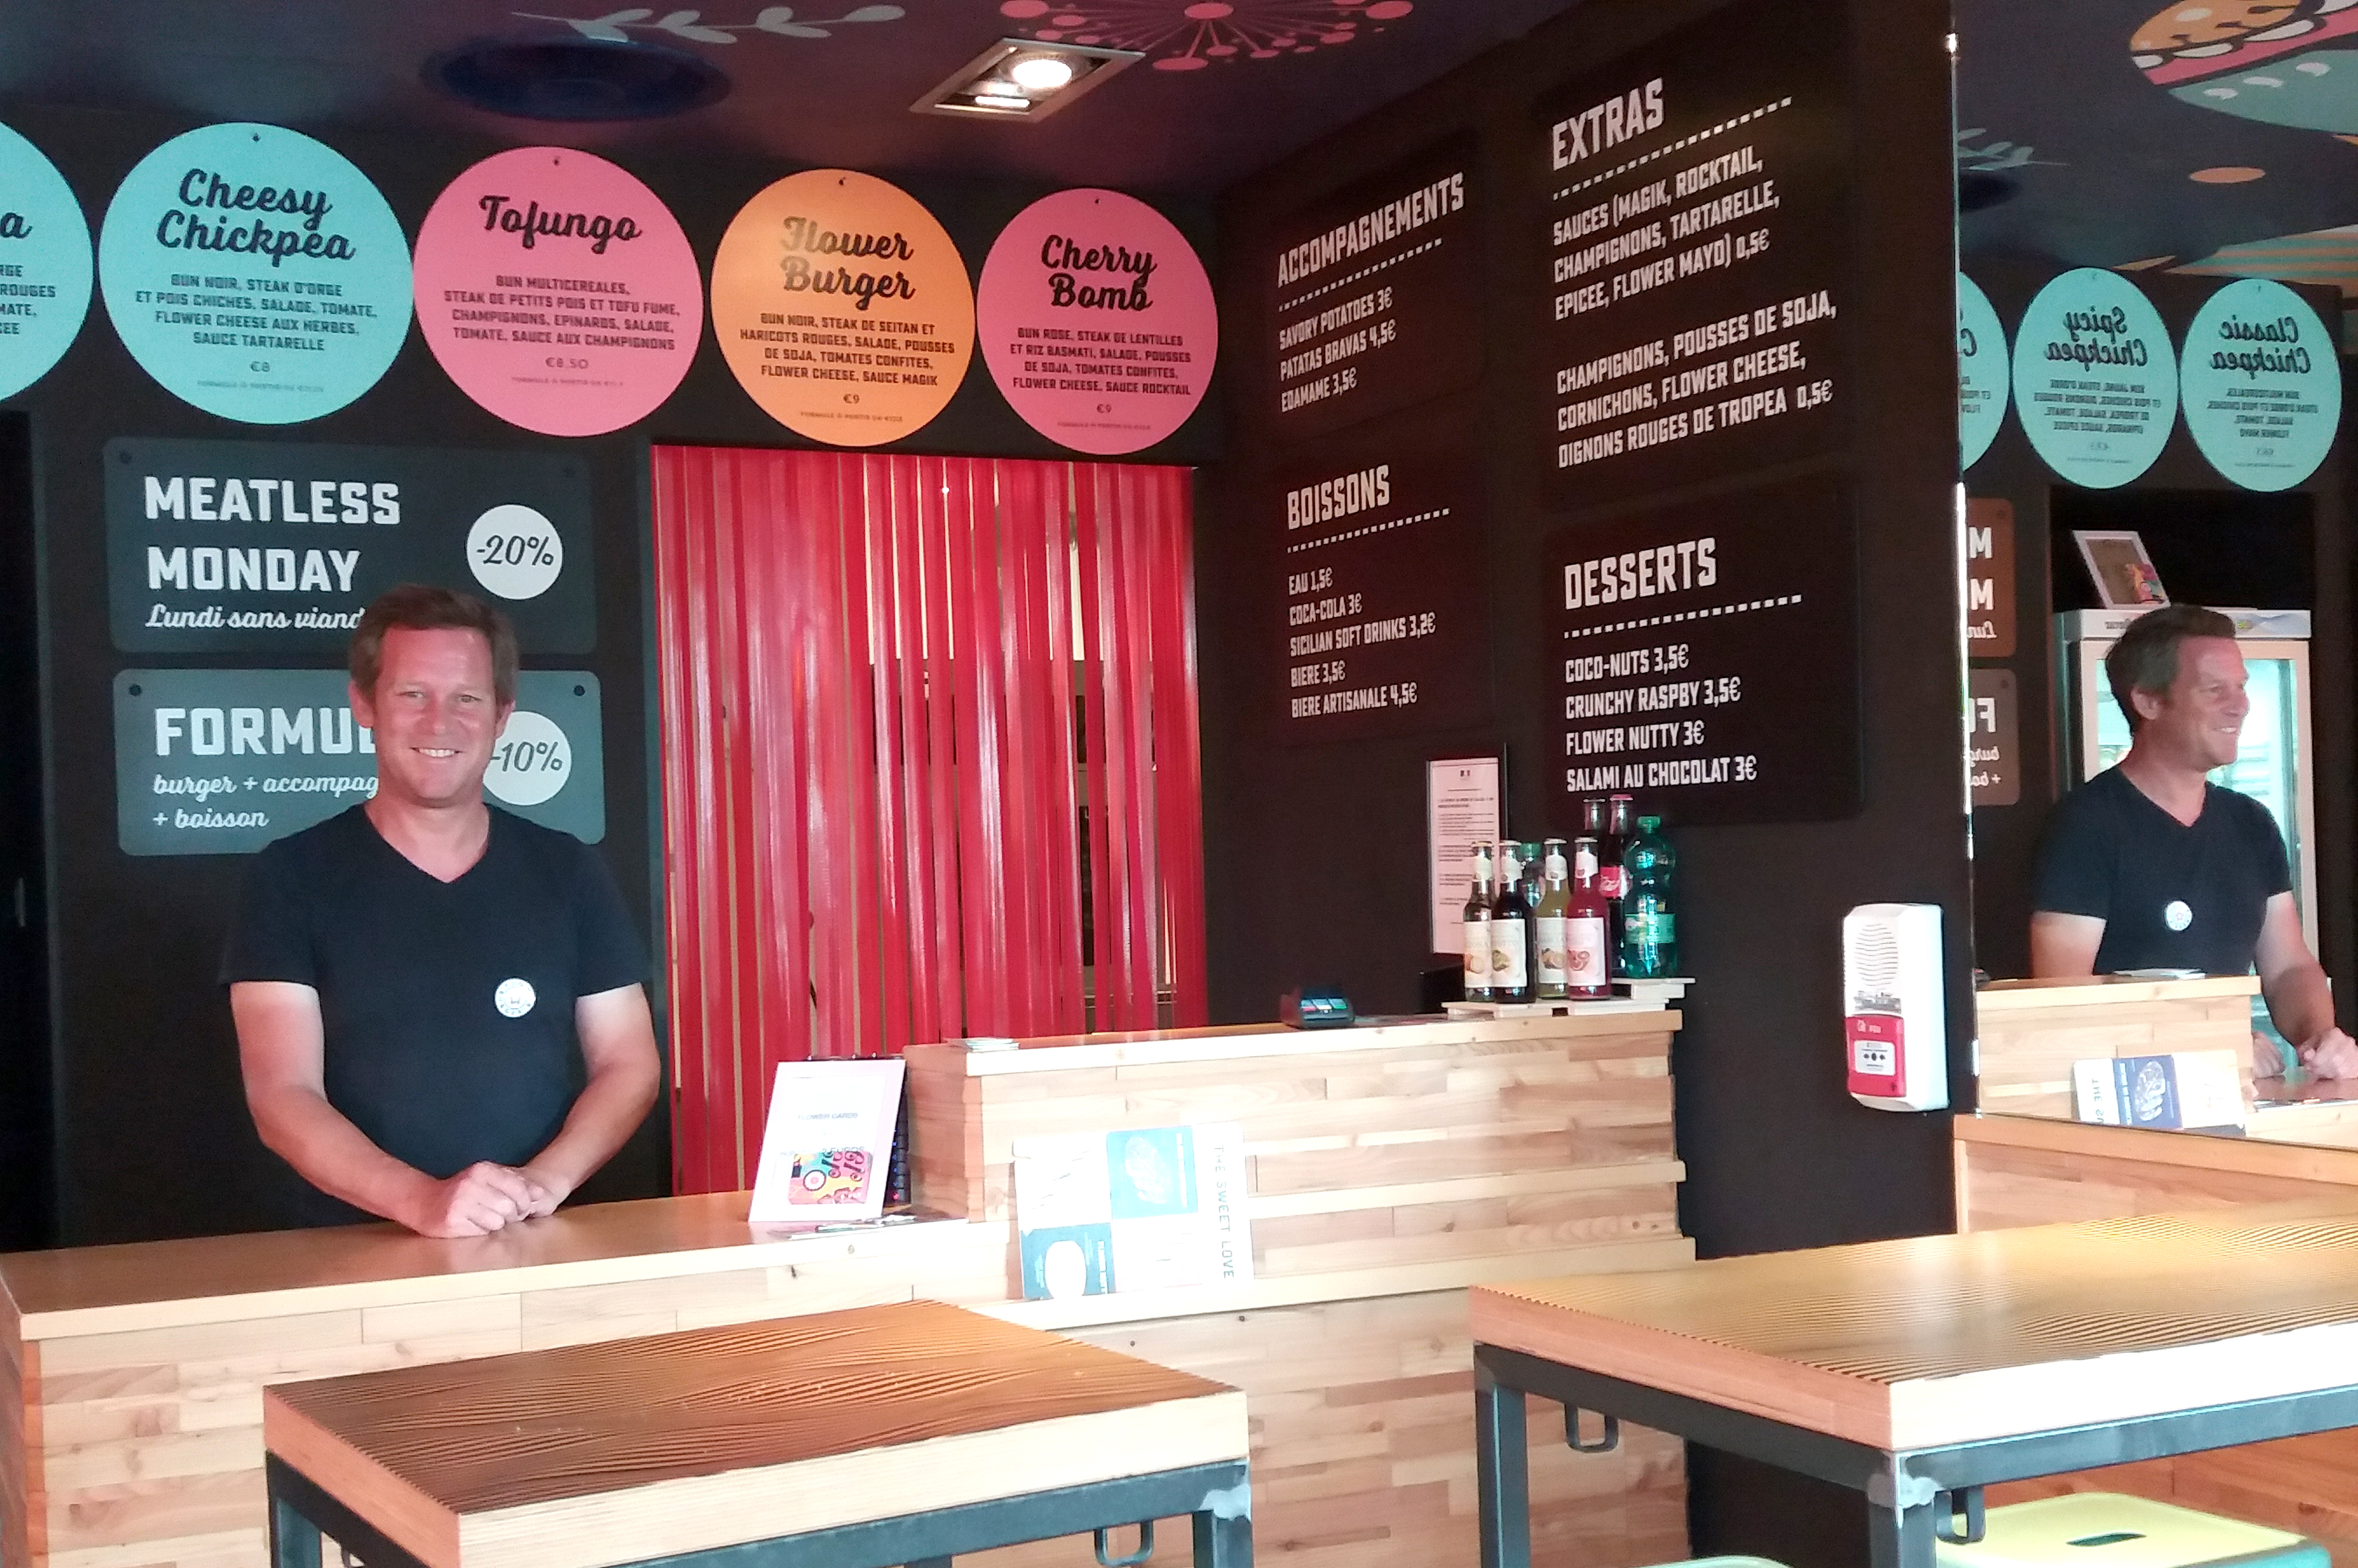 Flower Burger, the new concept store is expanding to France and chooses Marseille